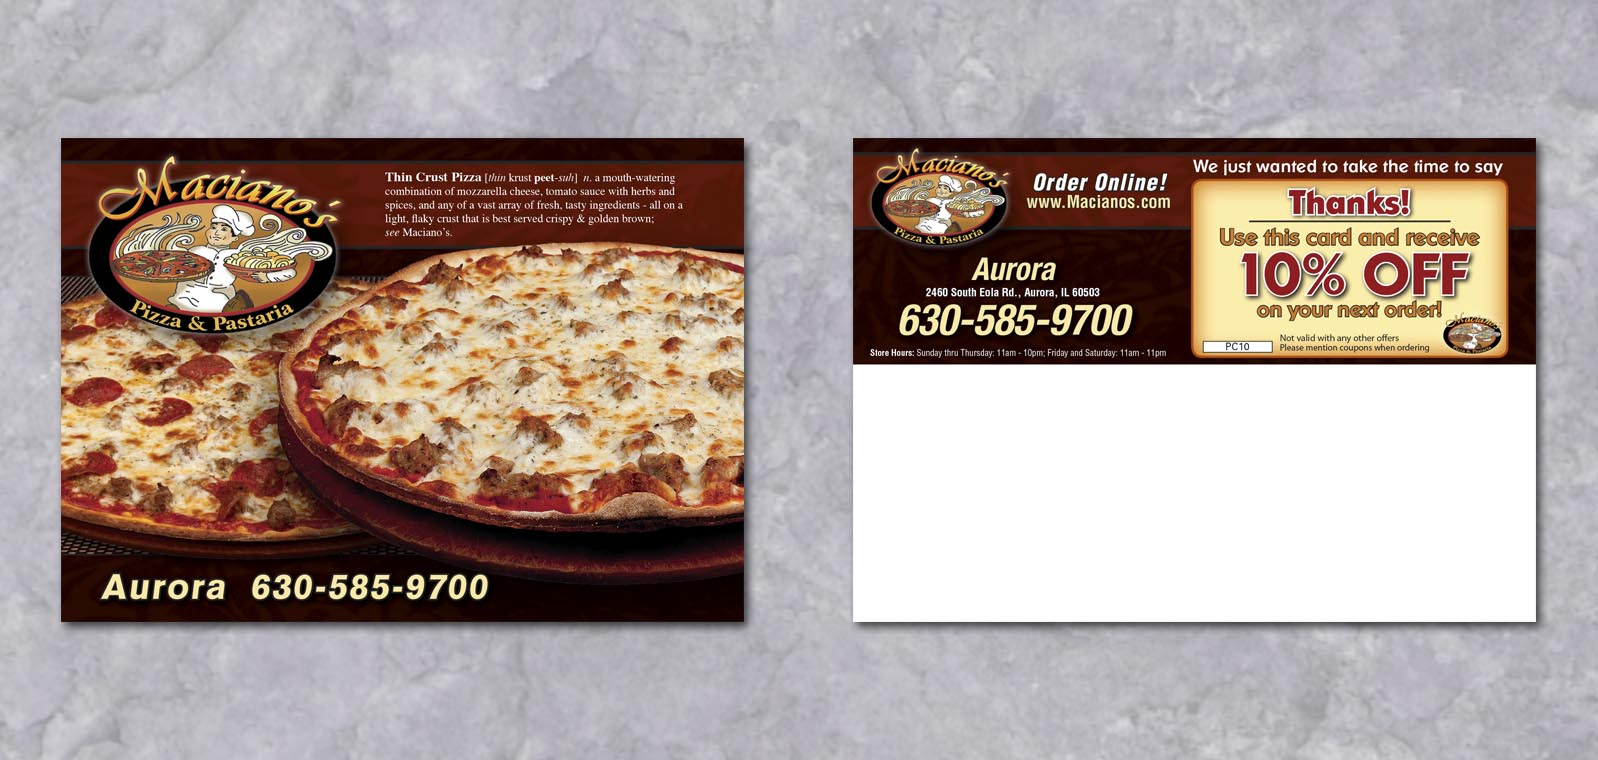 Postcard Graphic Design for Macianos Pizza and Pastaria by Roselle Graphic Designer Controlled Color, Inc.